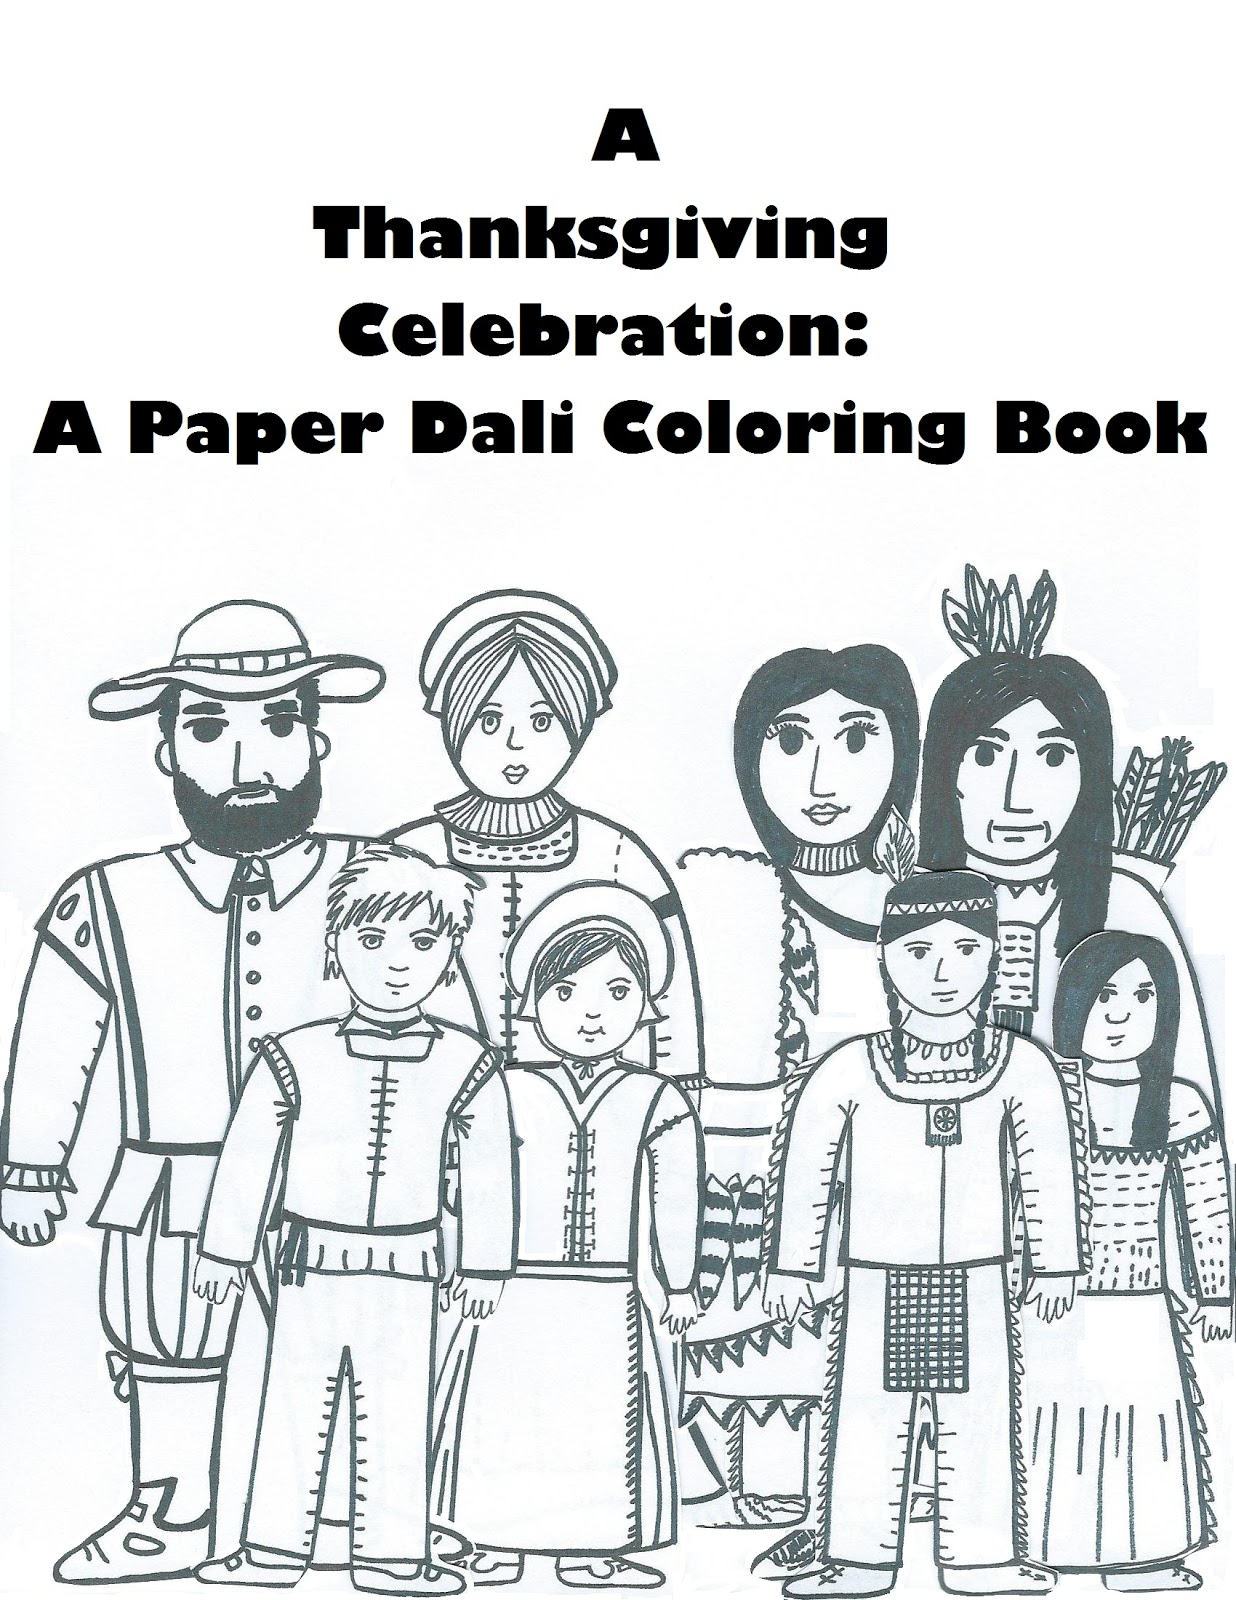 catholic coloring pages thanksgiving printable - photo#37